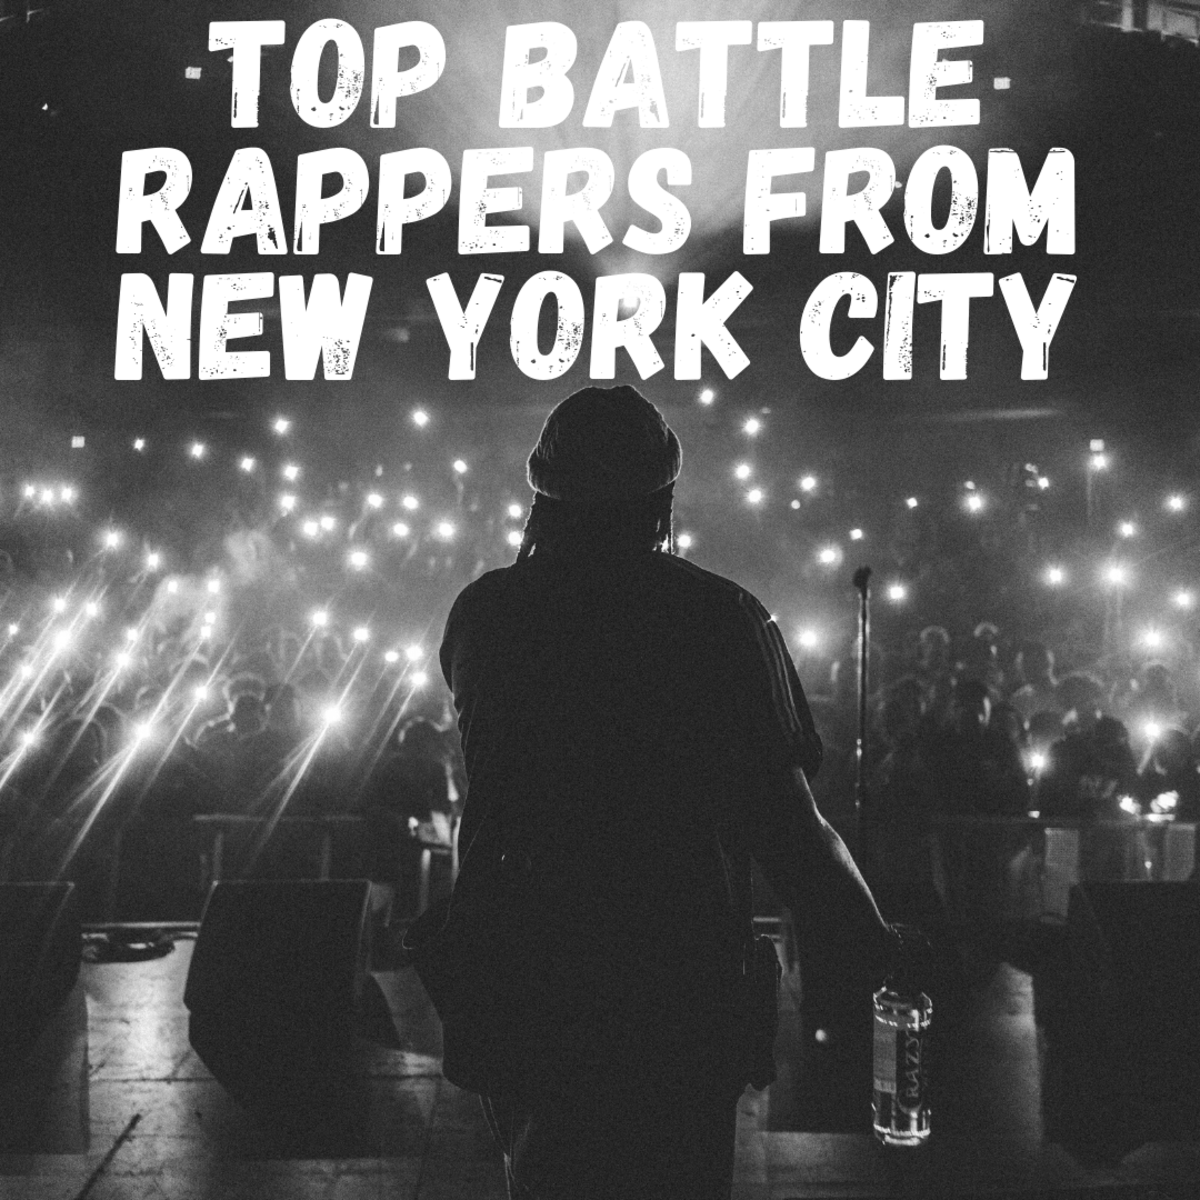 Top 10 Battle Rappers From New York City